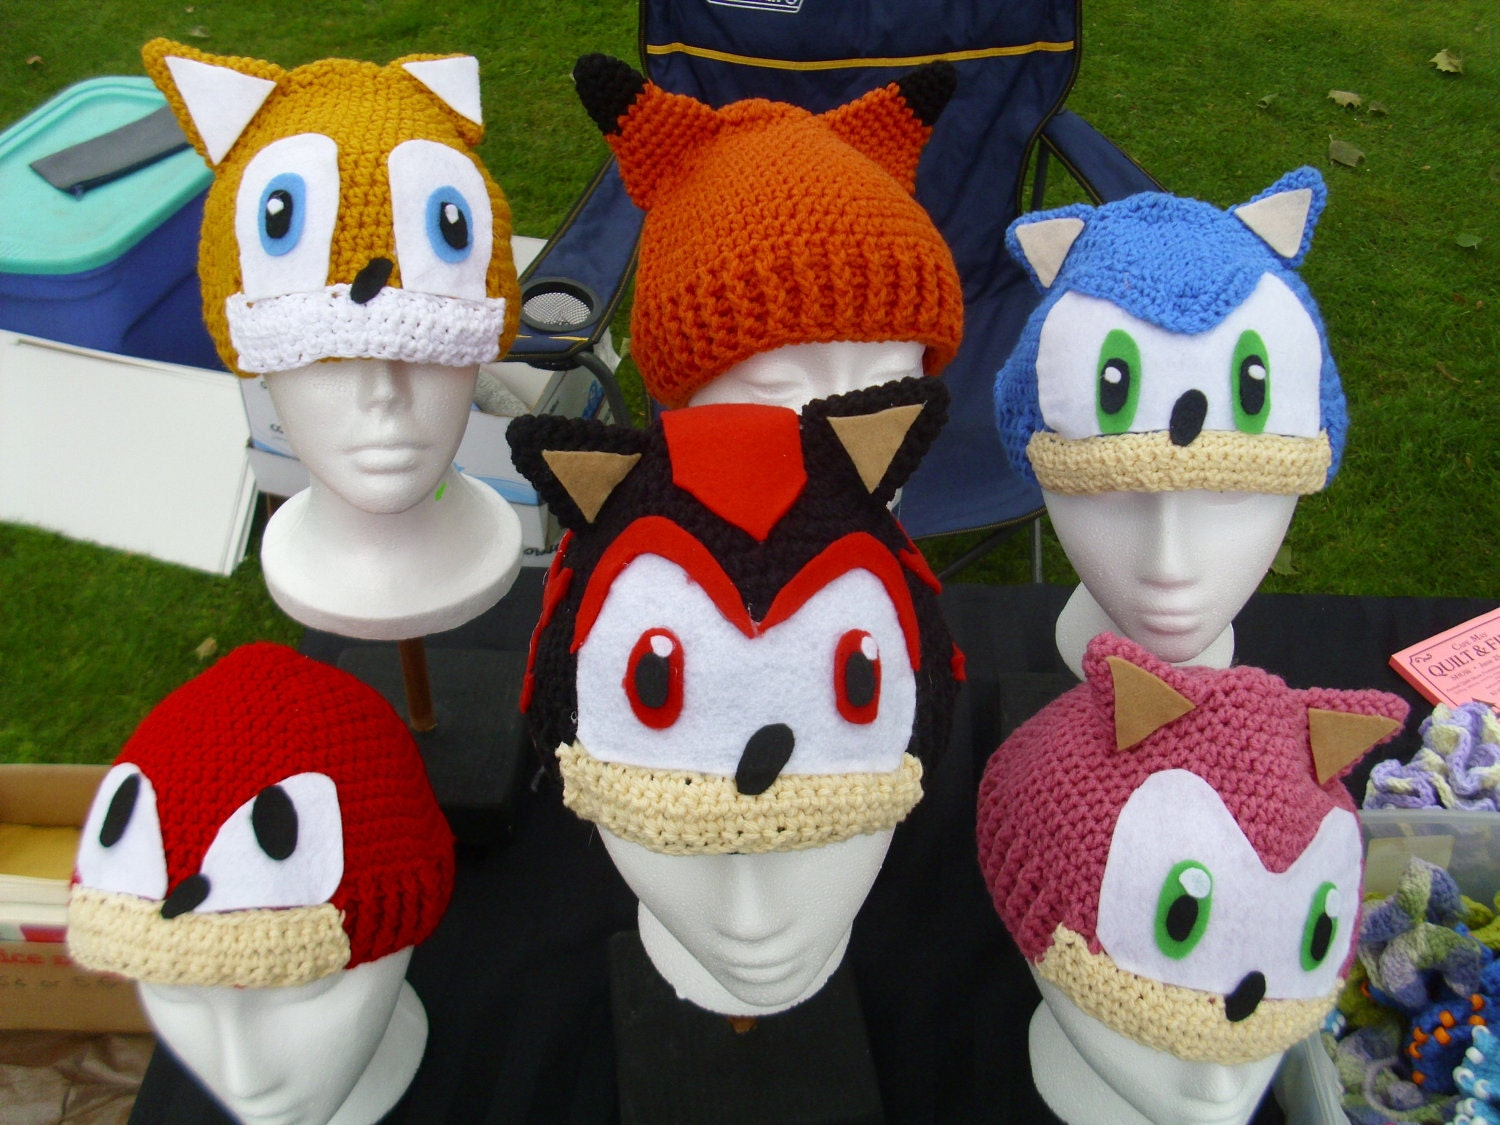 Free Crochet Pattern For Sonic The Hedgehog Hat 281d575bc4a